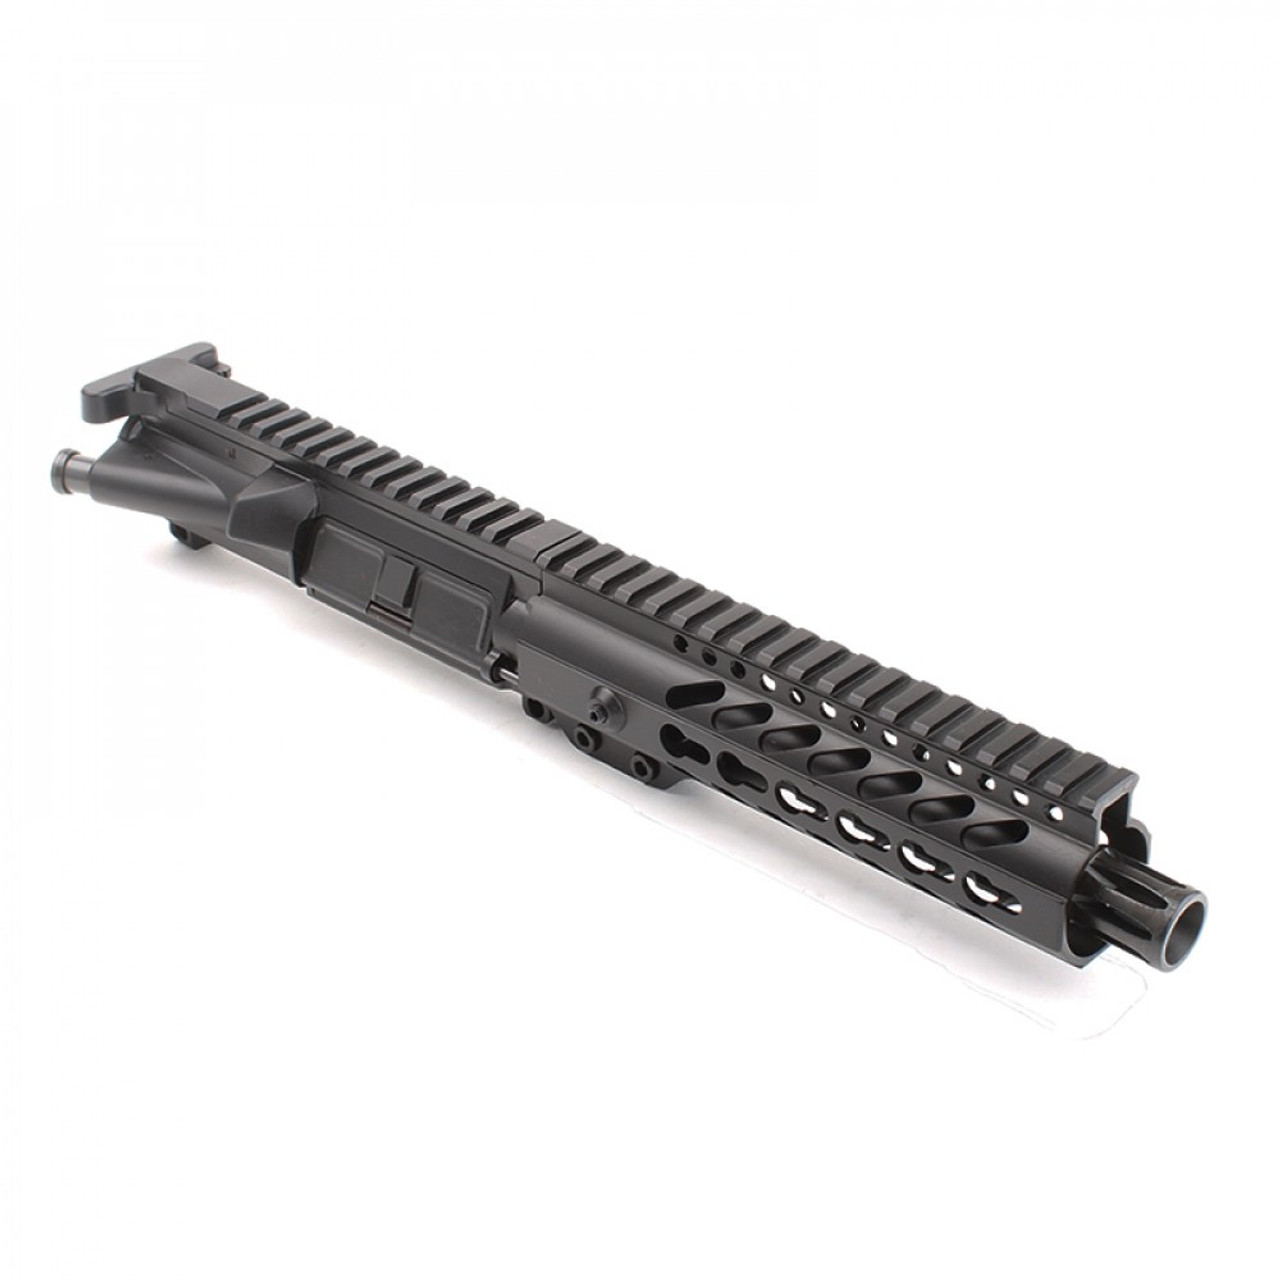 """MDX Arms AR-9mm Pistol 7.5"""" 1:10T with 7' Super Slim Mlok HG without bolt"""